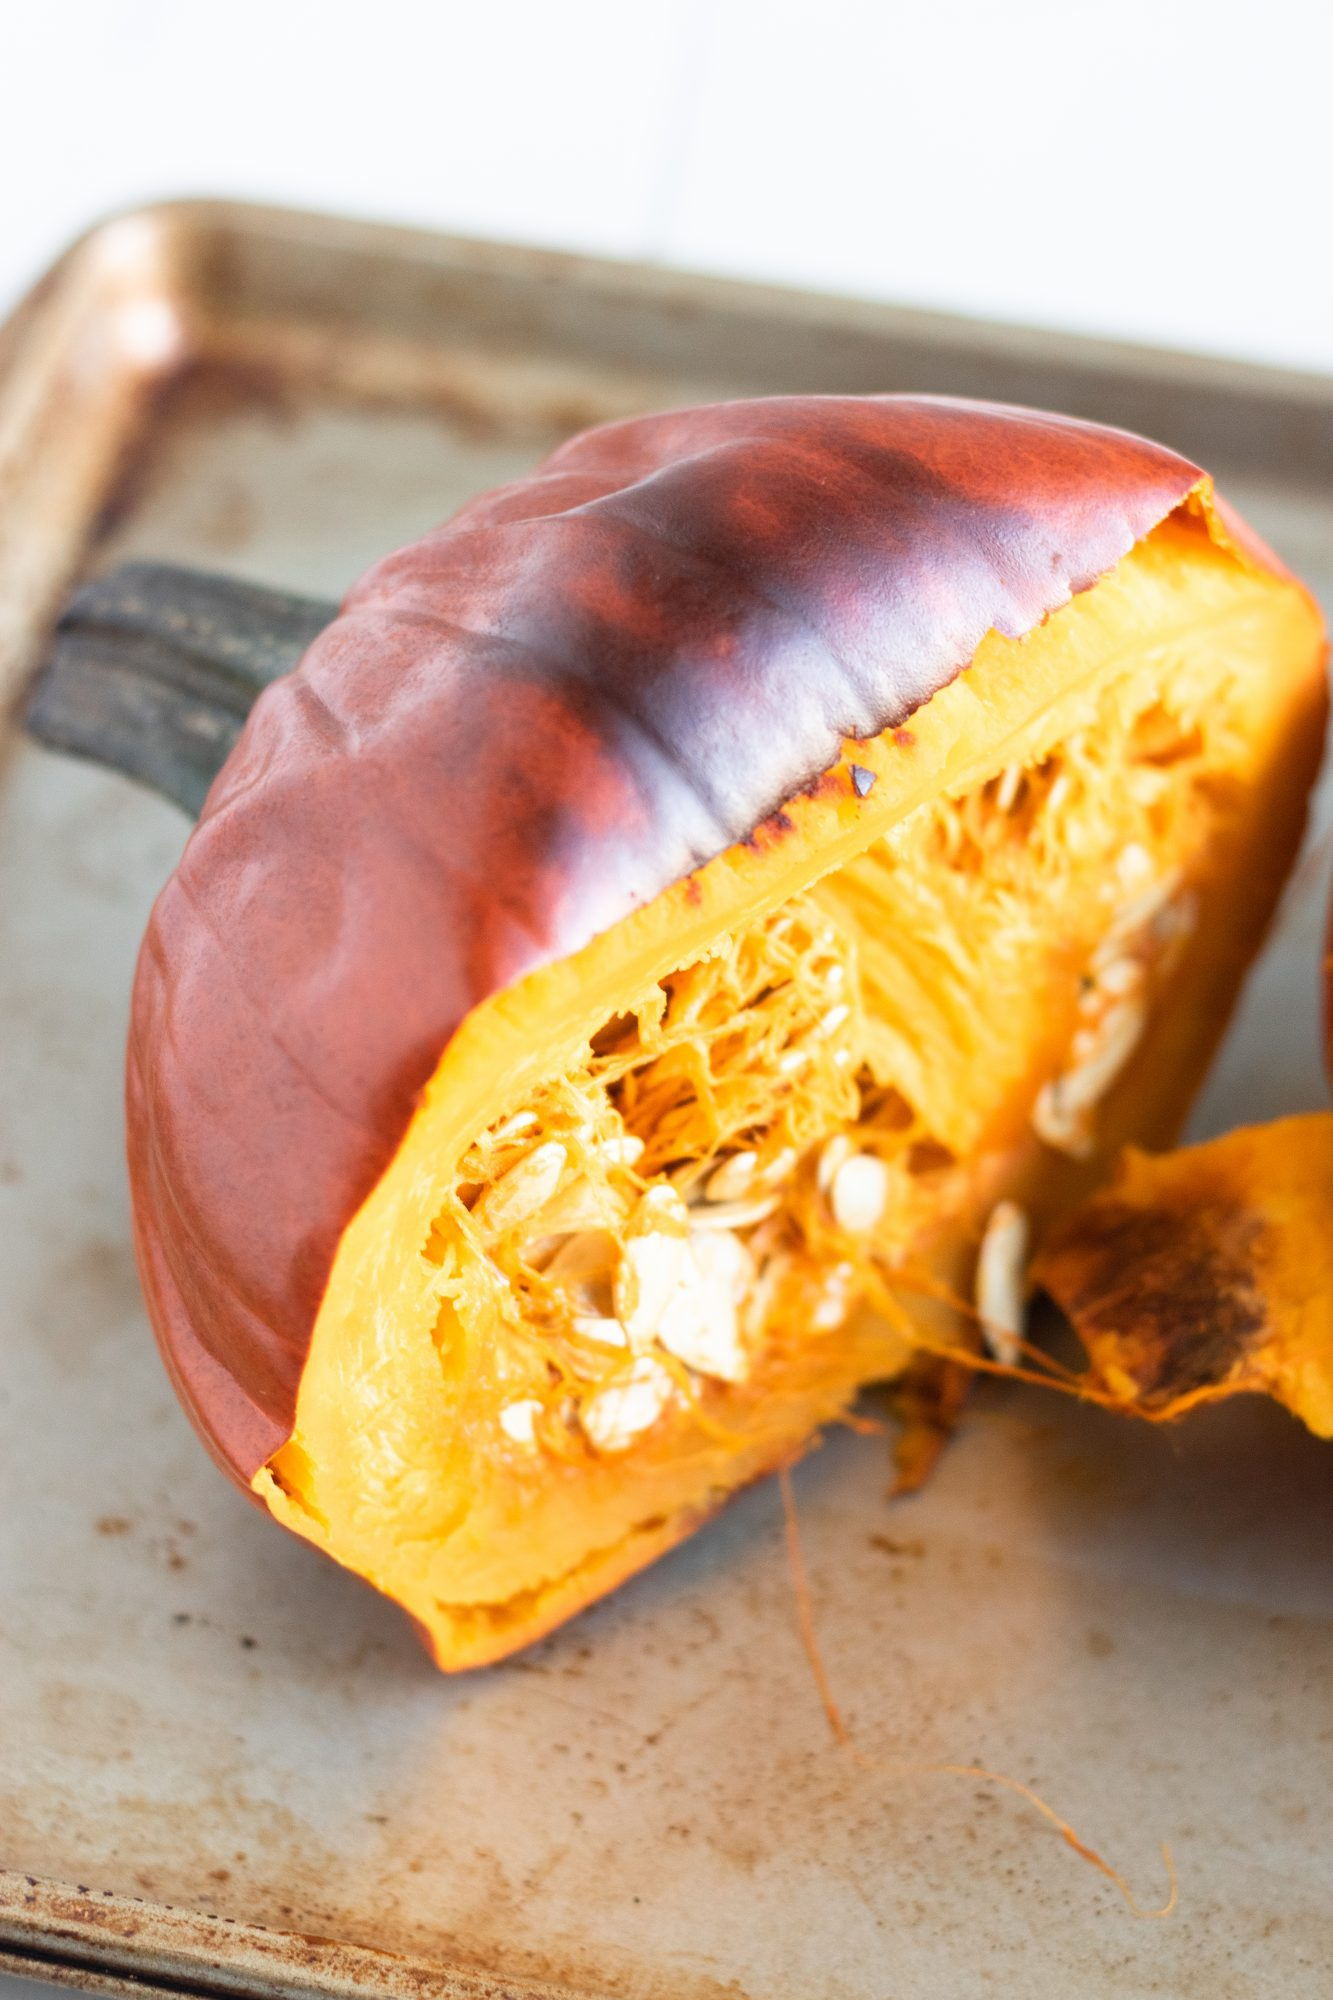 Oven Baked Whole Pumpkin Cut in Half